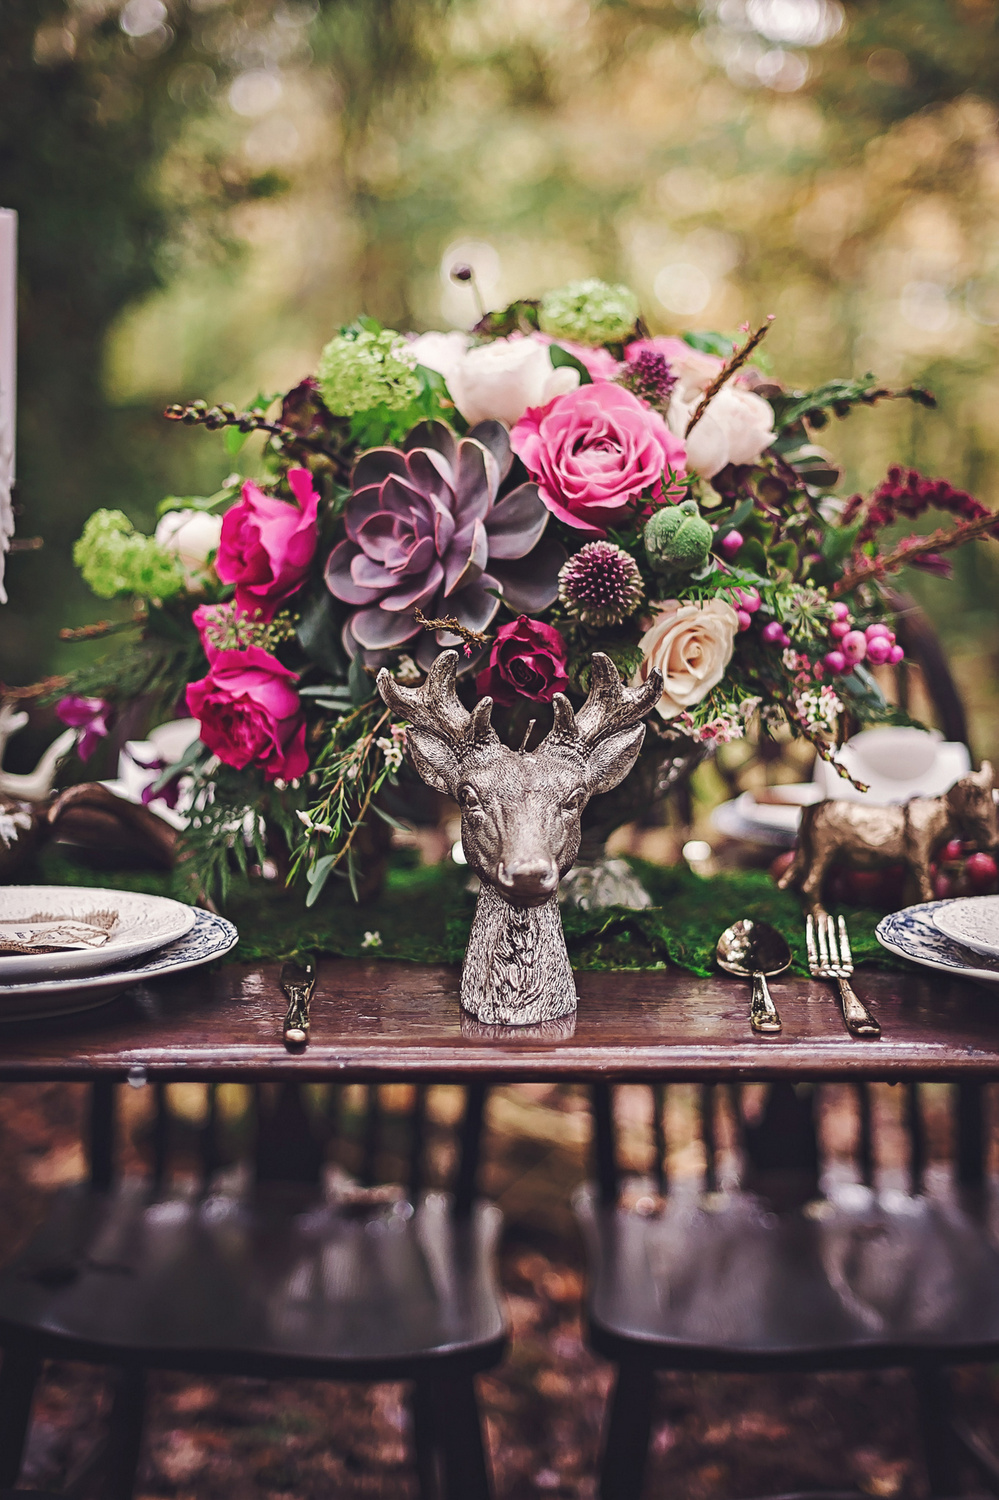 Autumnal table flowers in lilac, claret & green